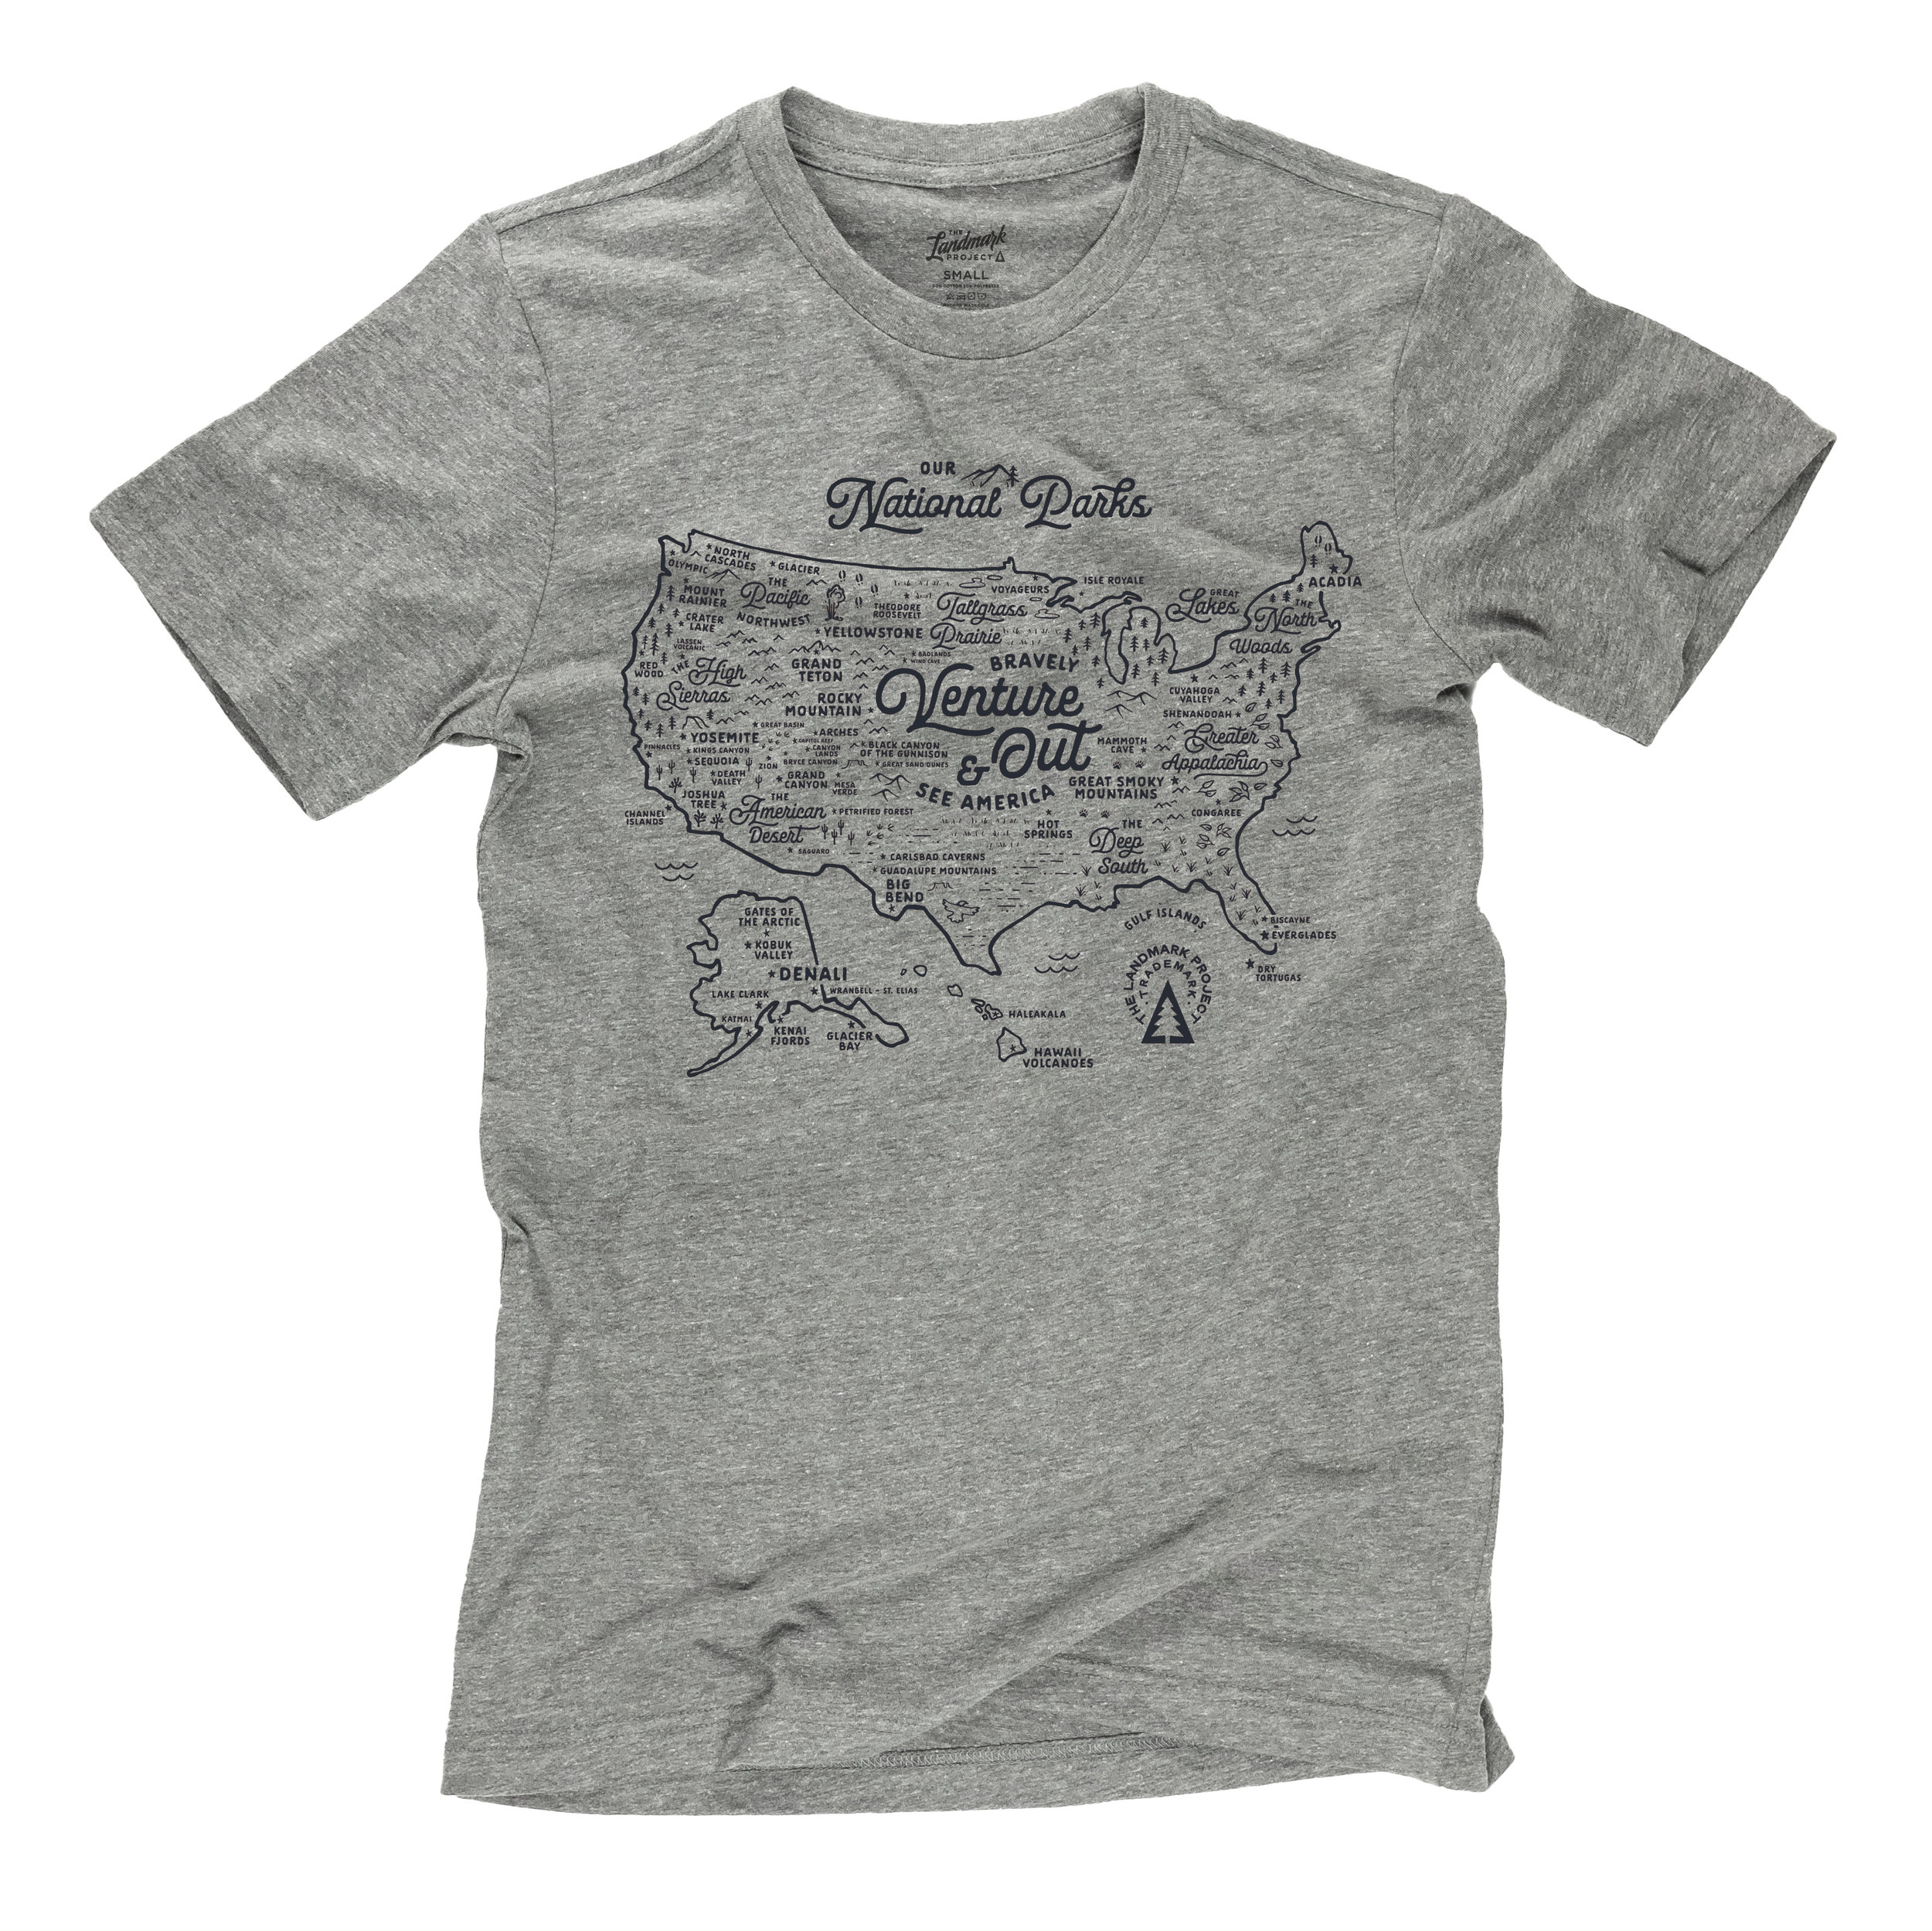 nps-map-tee-grey.jpg